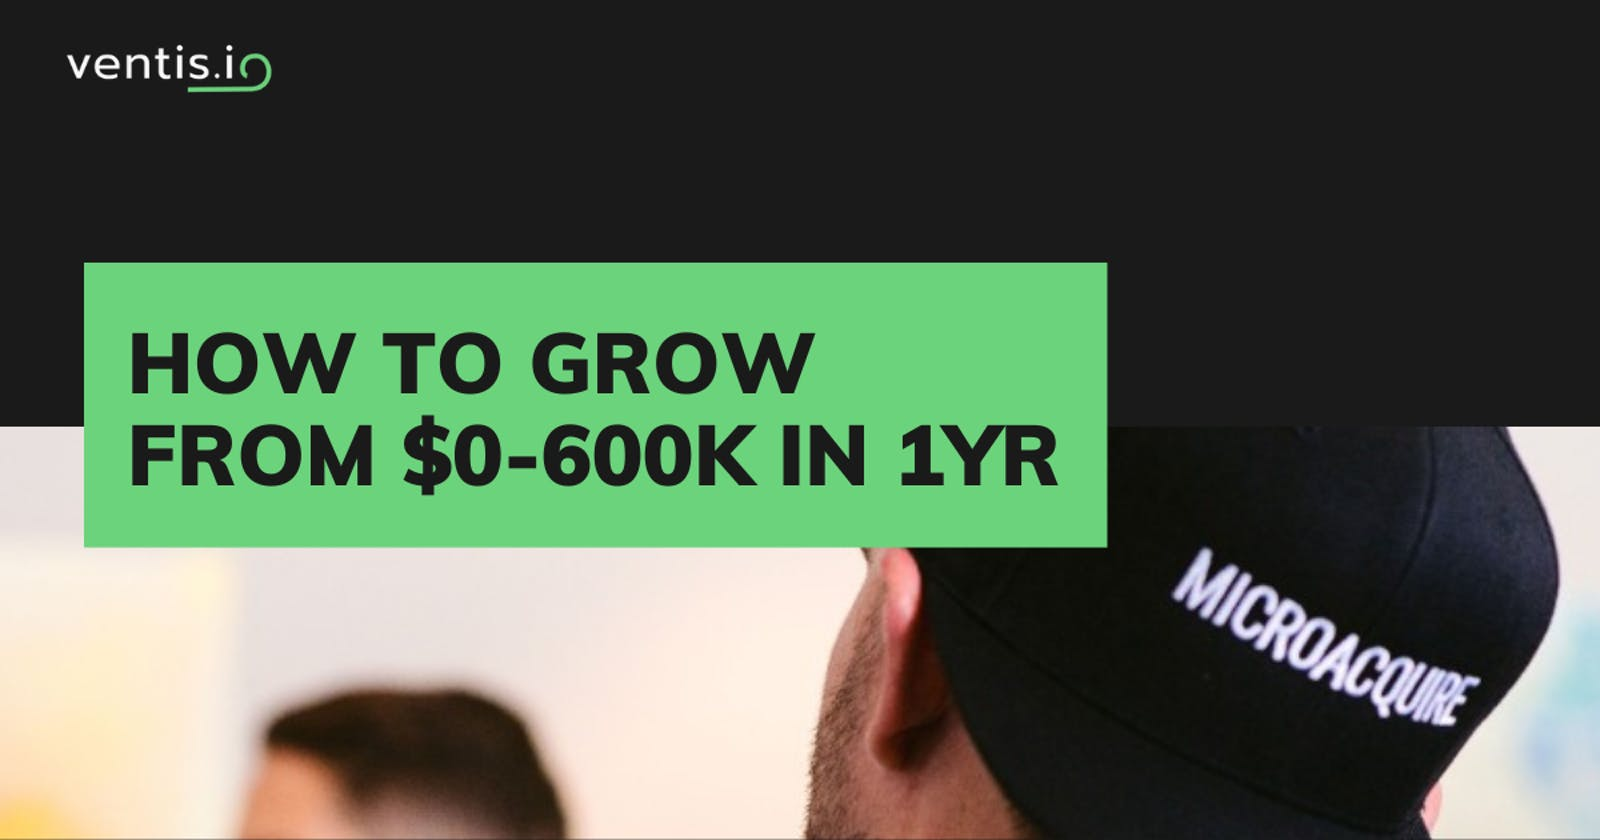 How Microacquire grew organically from $0-600k in 1 year